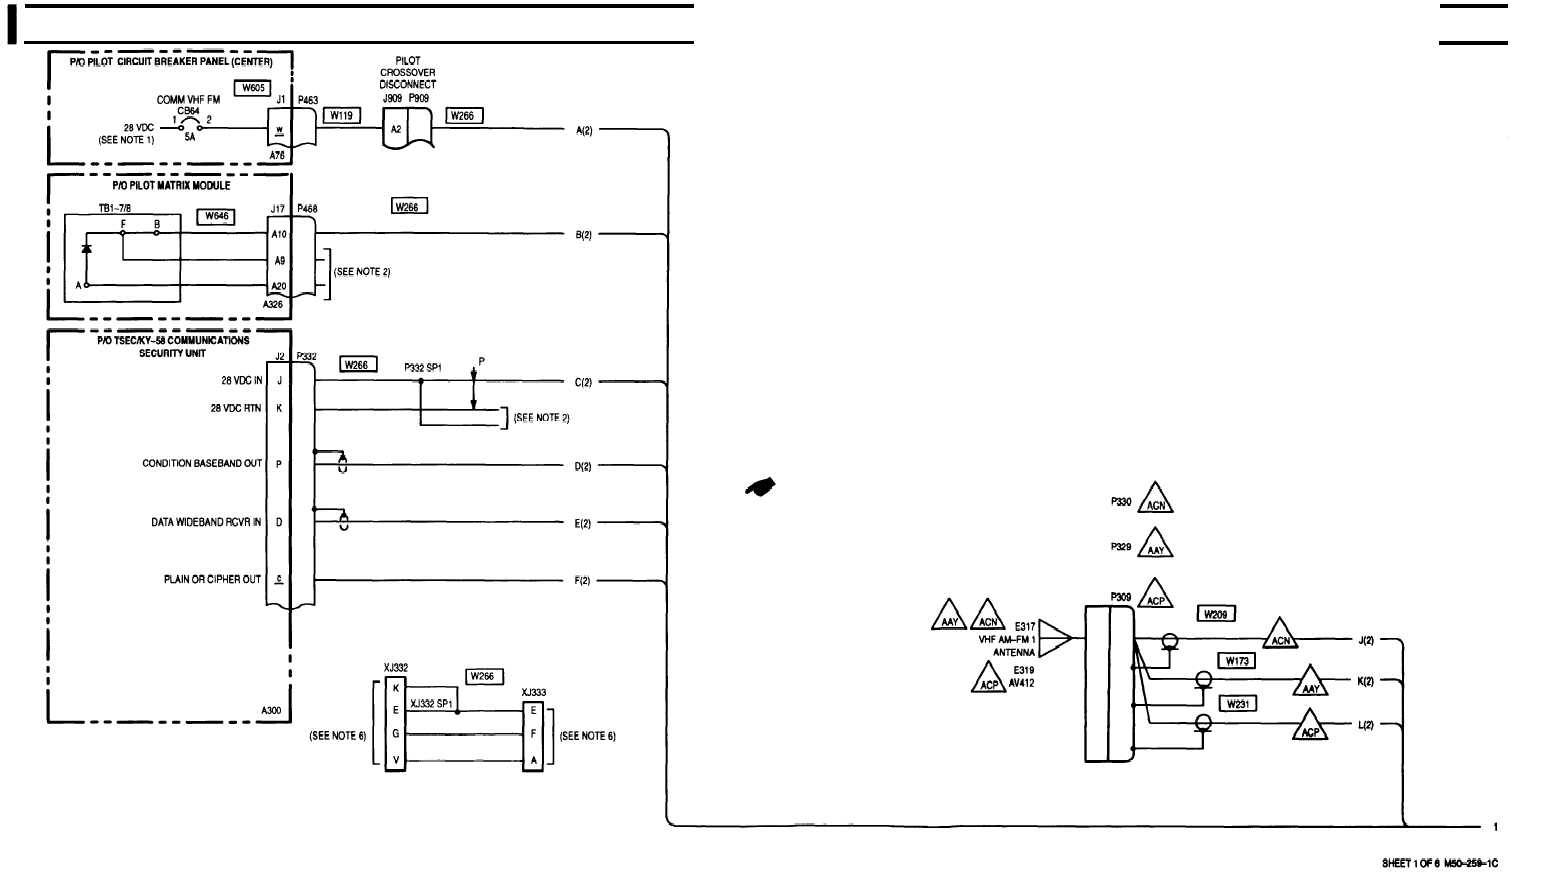 hight resolution of arc wiring diagram box wiring diagram srv wiring diagram arc fault wiring diagram wiring library hdmi